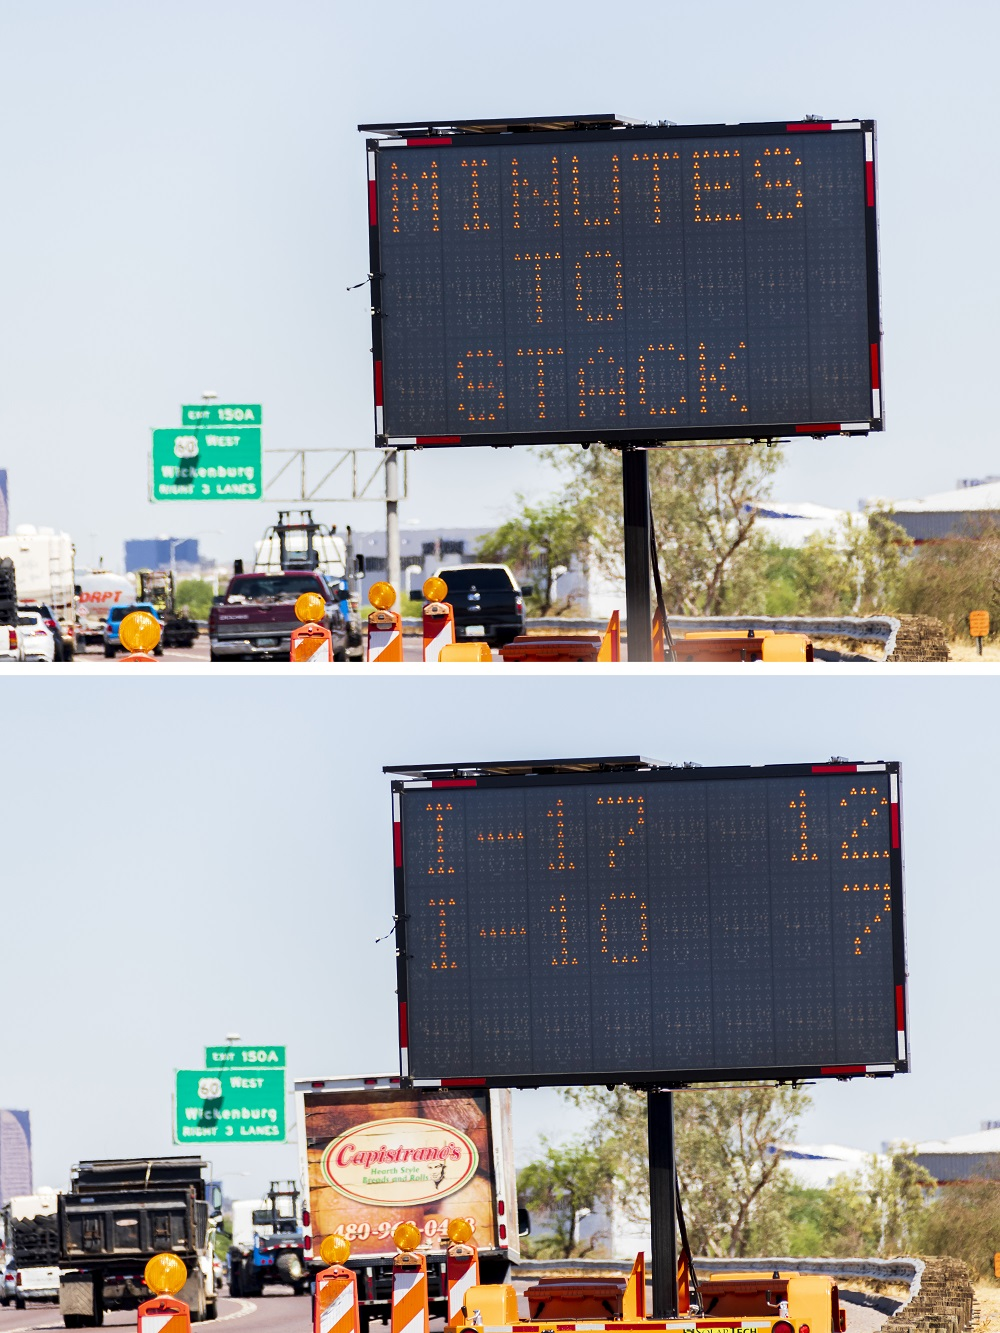 Travel times message